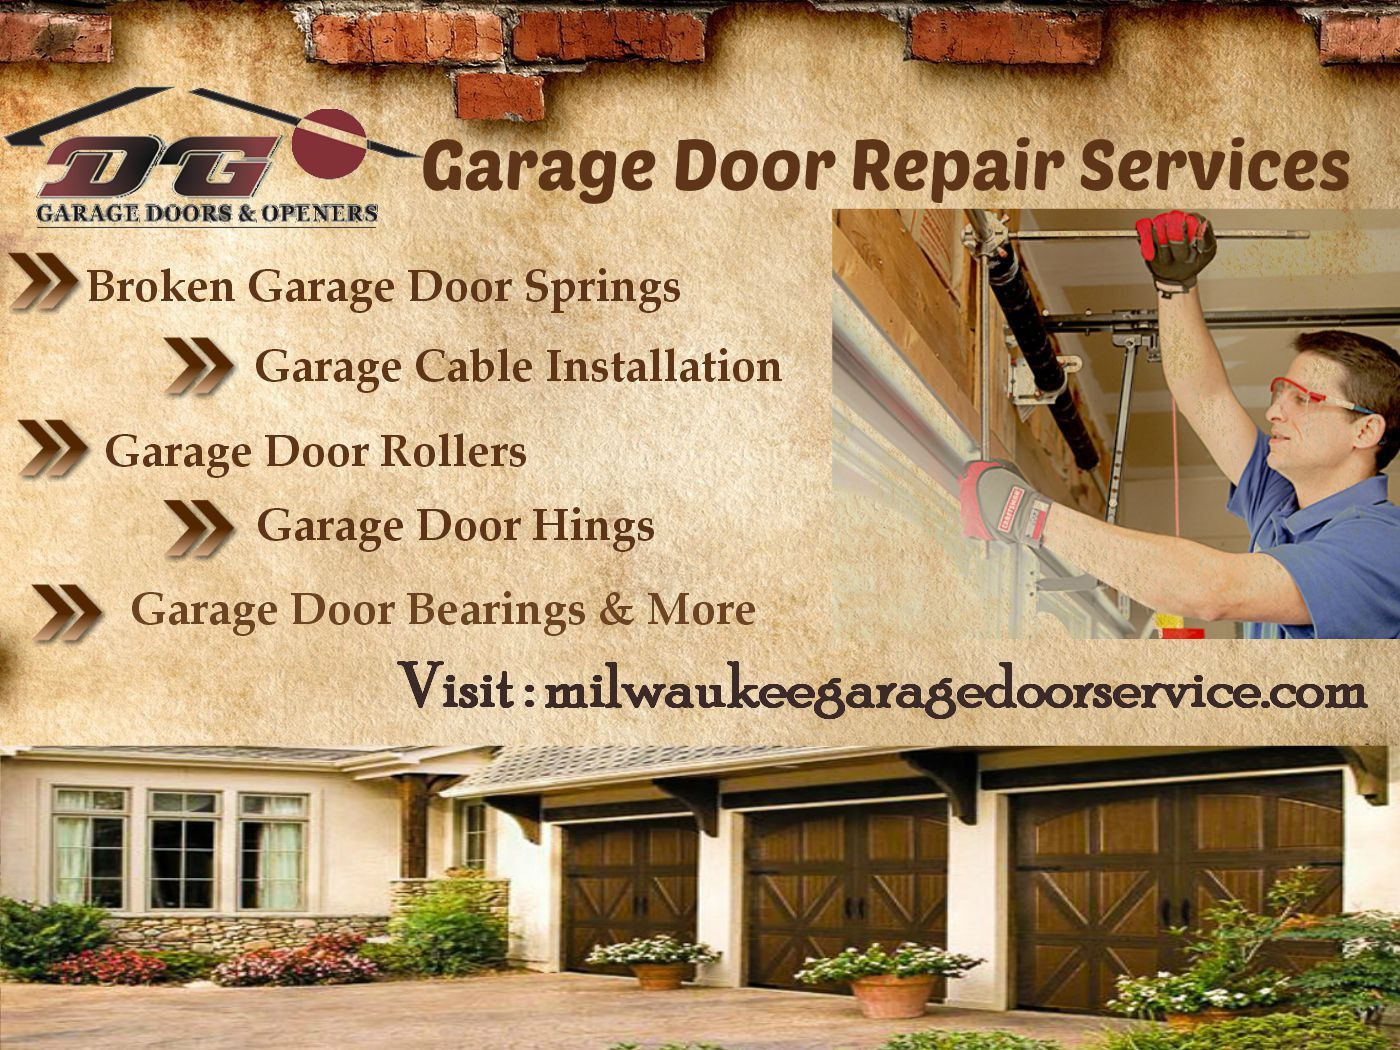 We Offer Fast Affordable Milwaukee Garage Door Installation And Repair Services Throughout The Area Garage Doors Garage Door Installation Garage Service Door